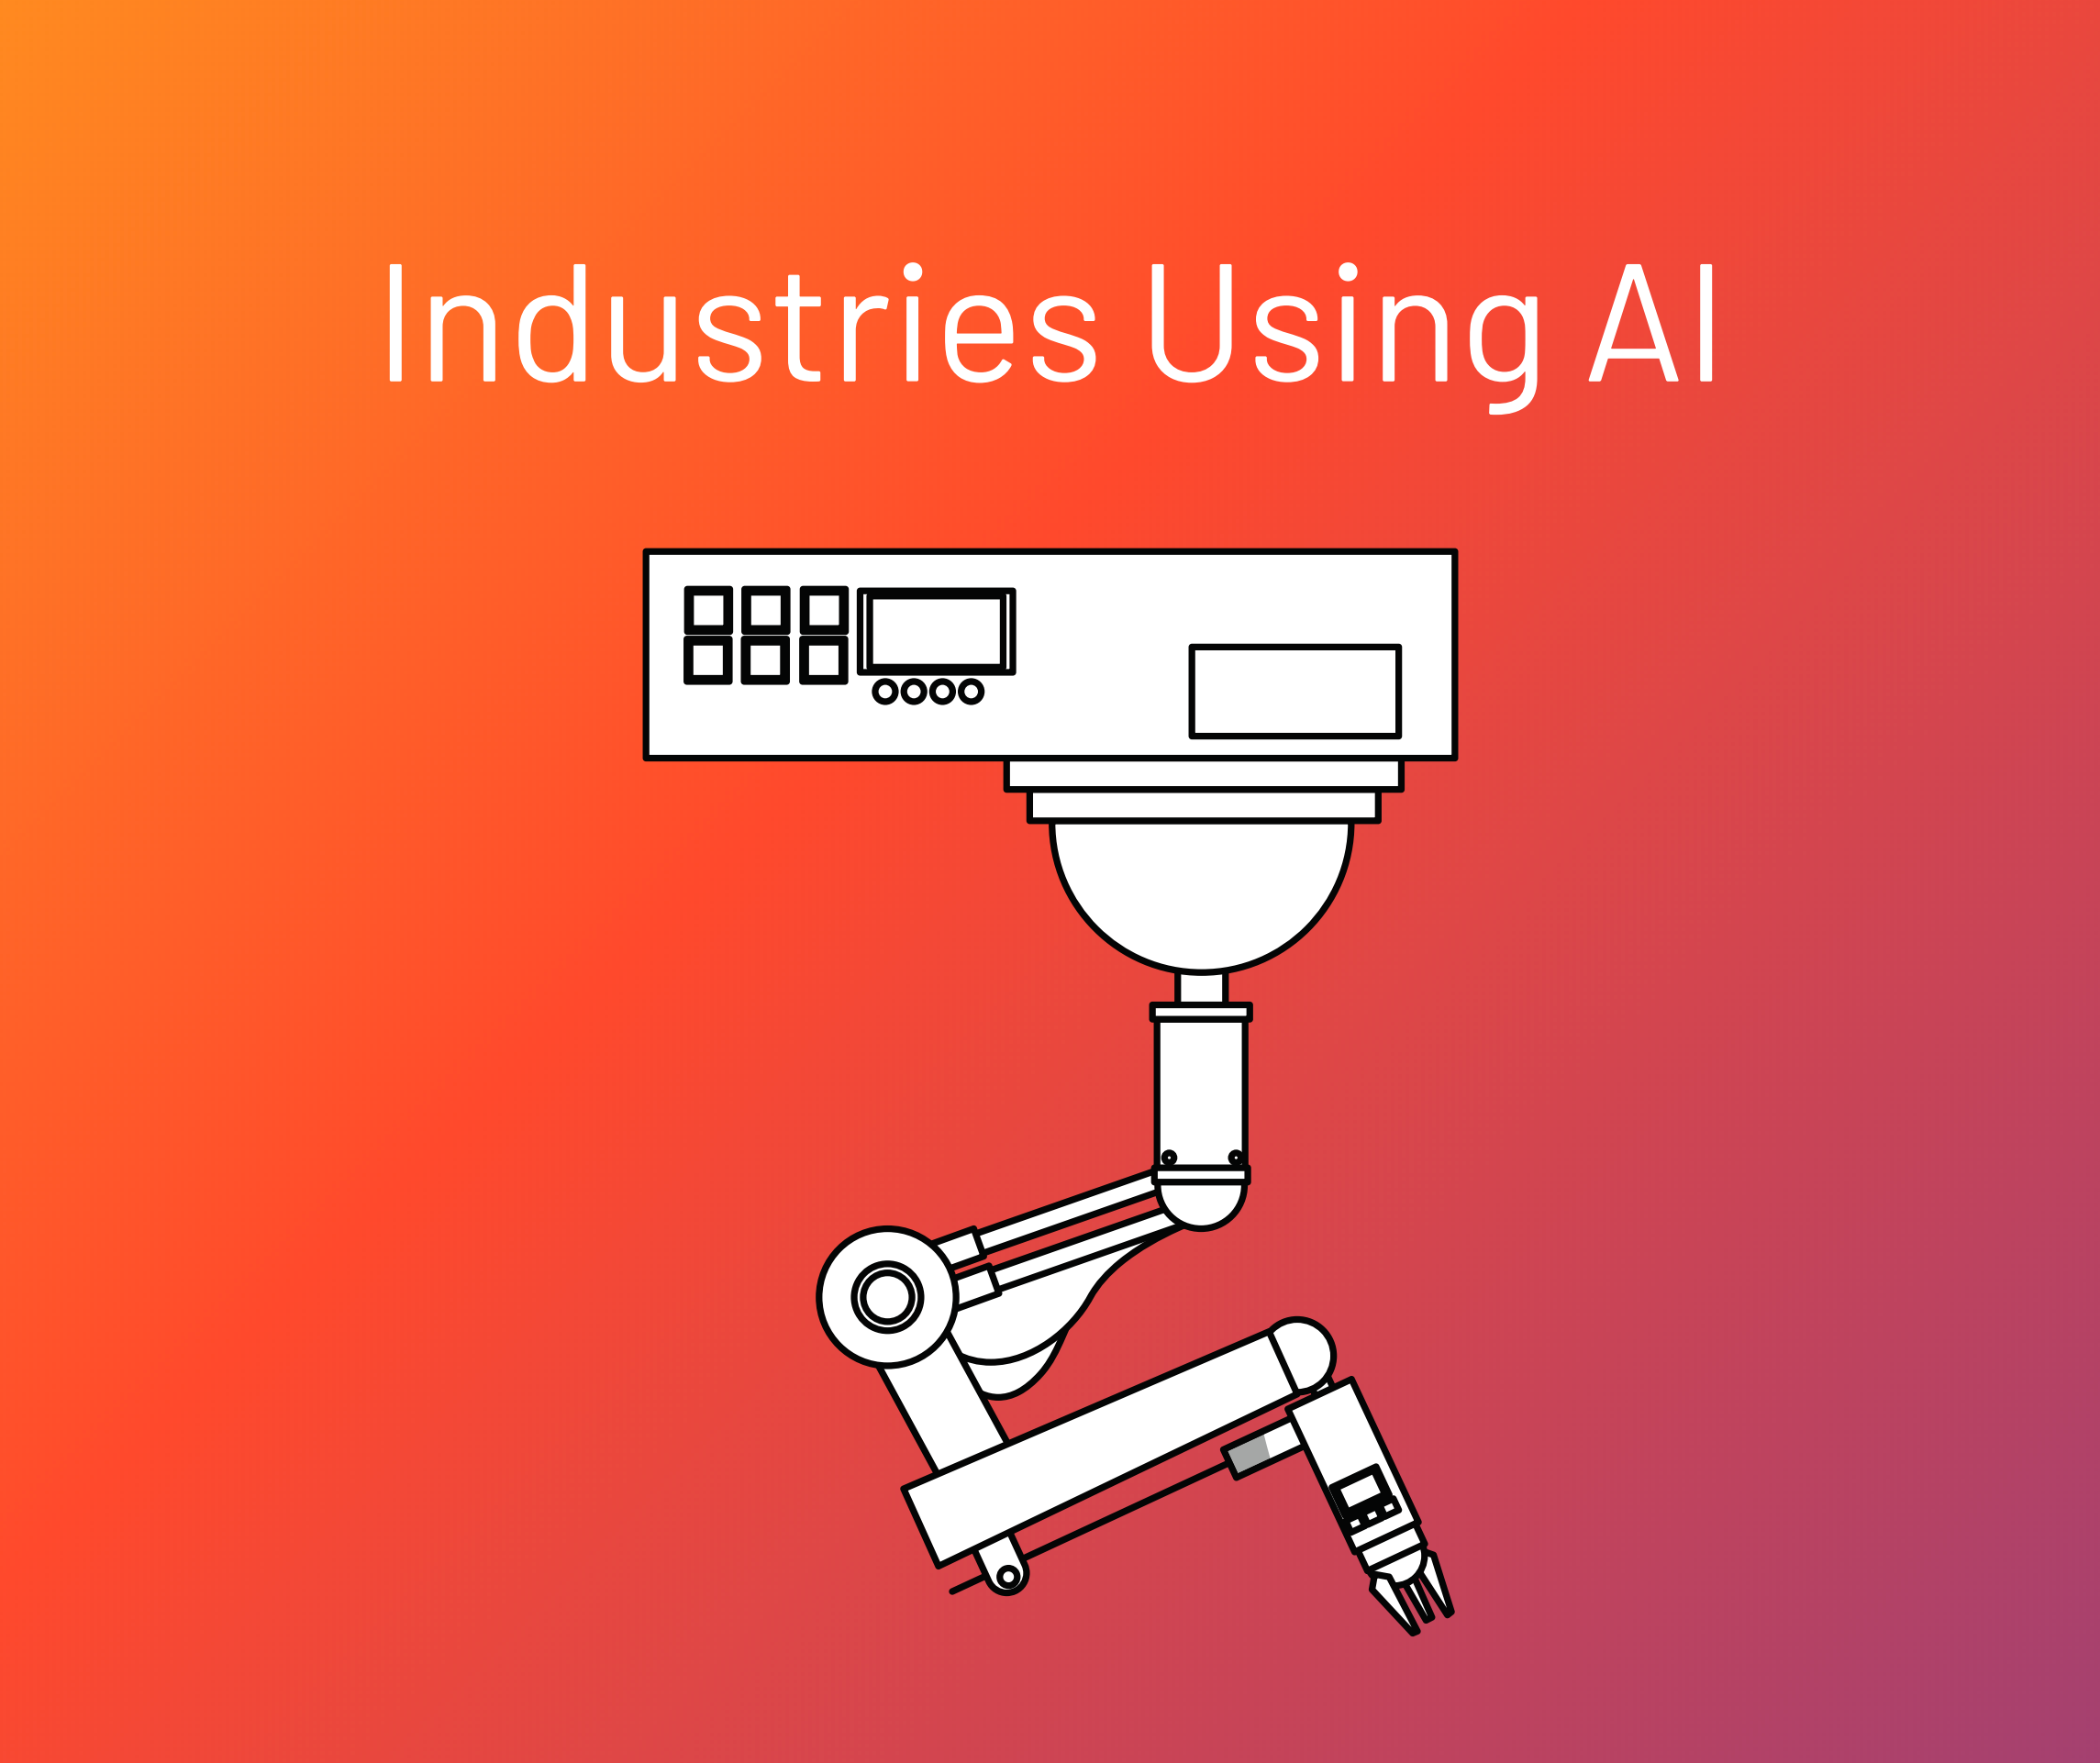 Industries Using Artificial Intelligence